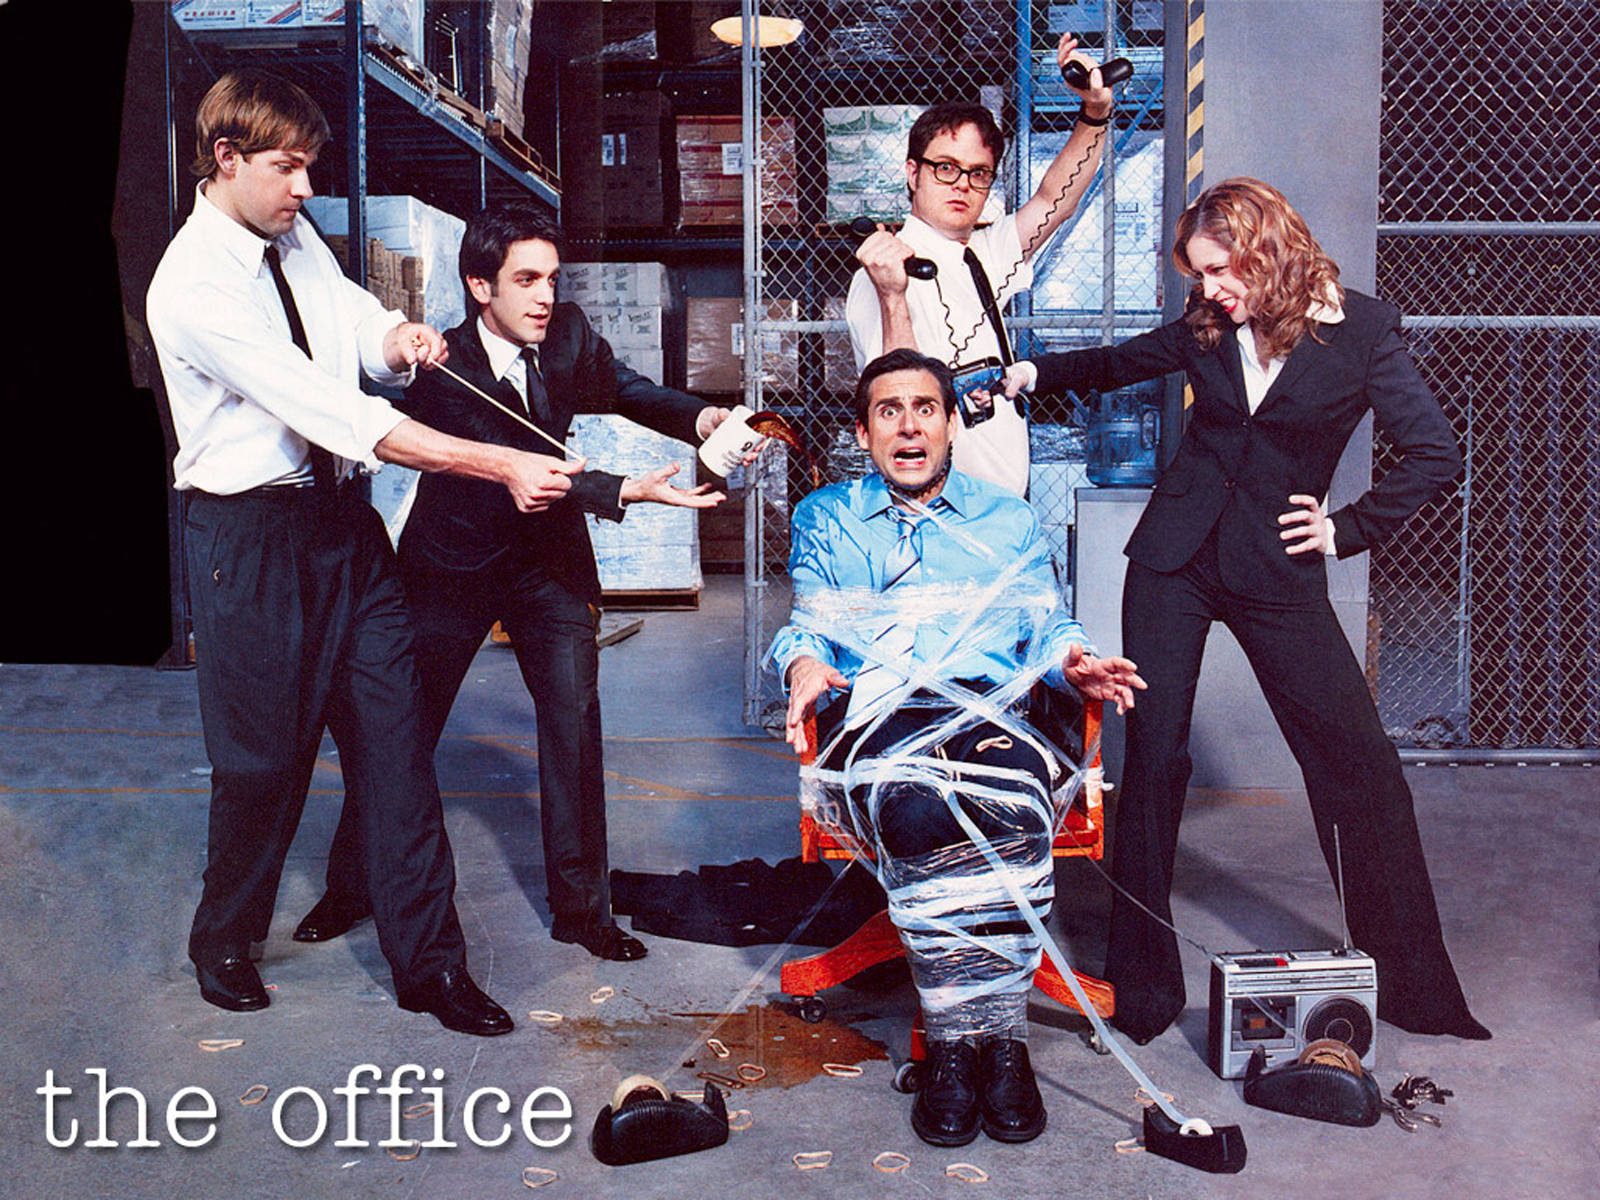 Download The Office iphone Backgrounds 1600x1200